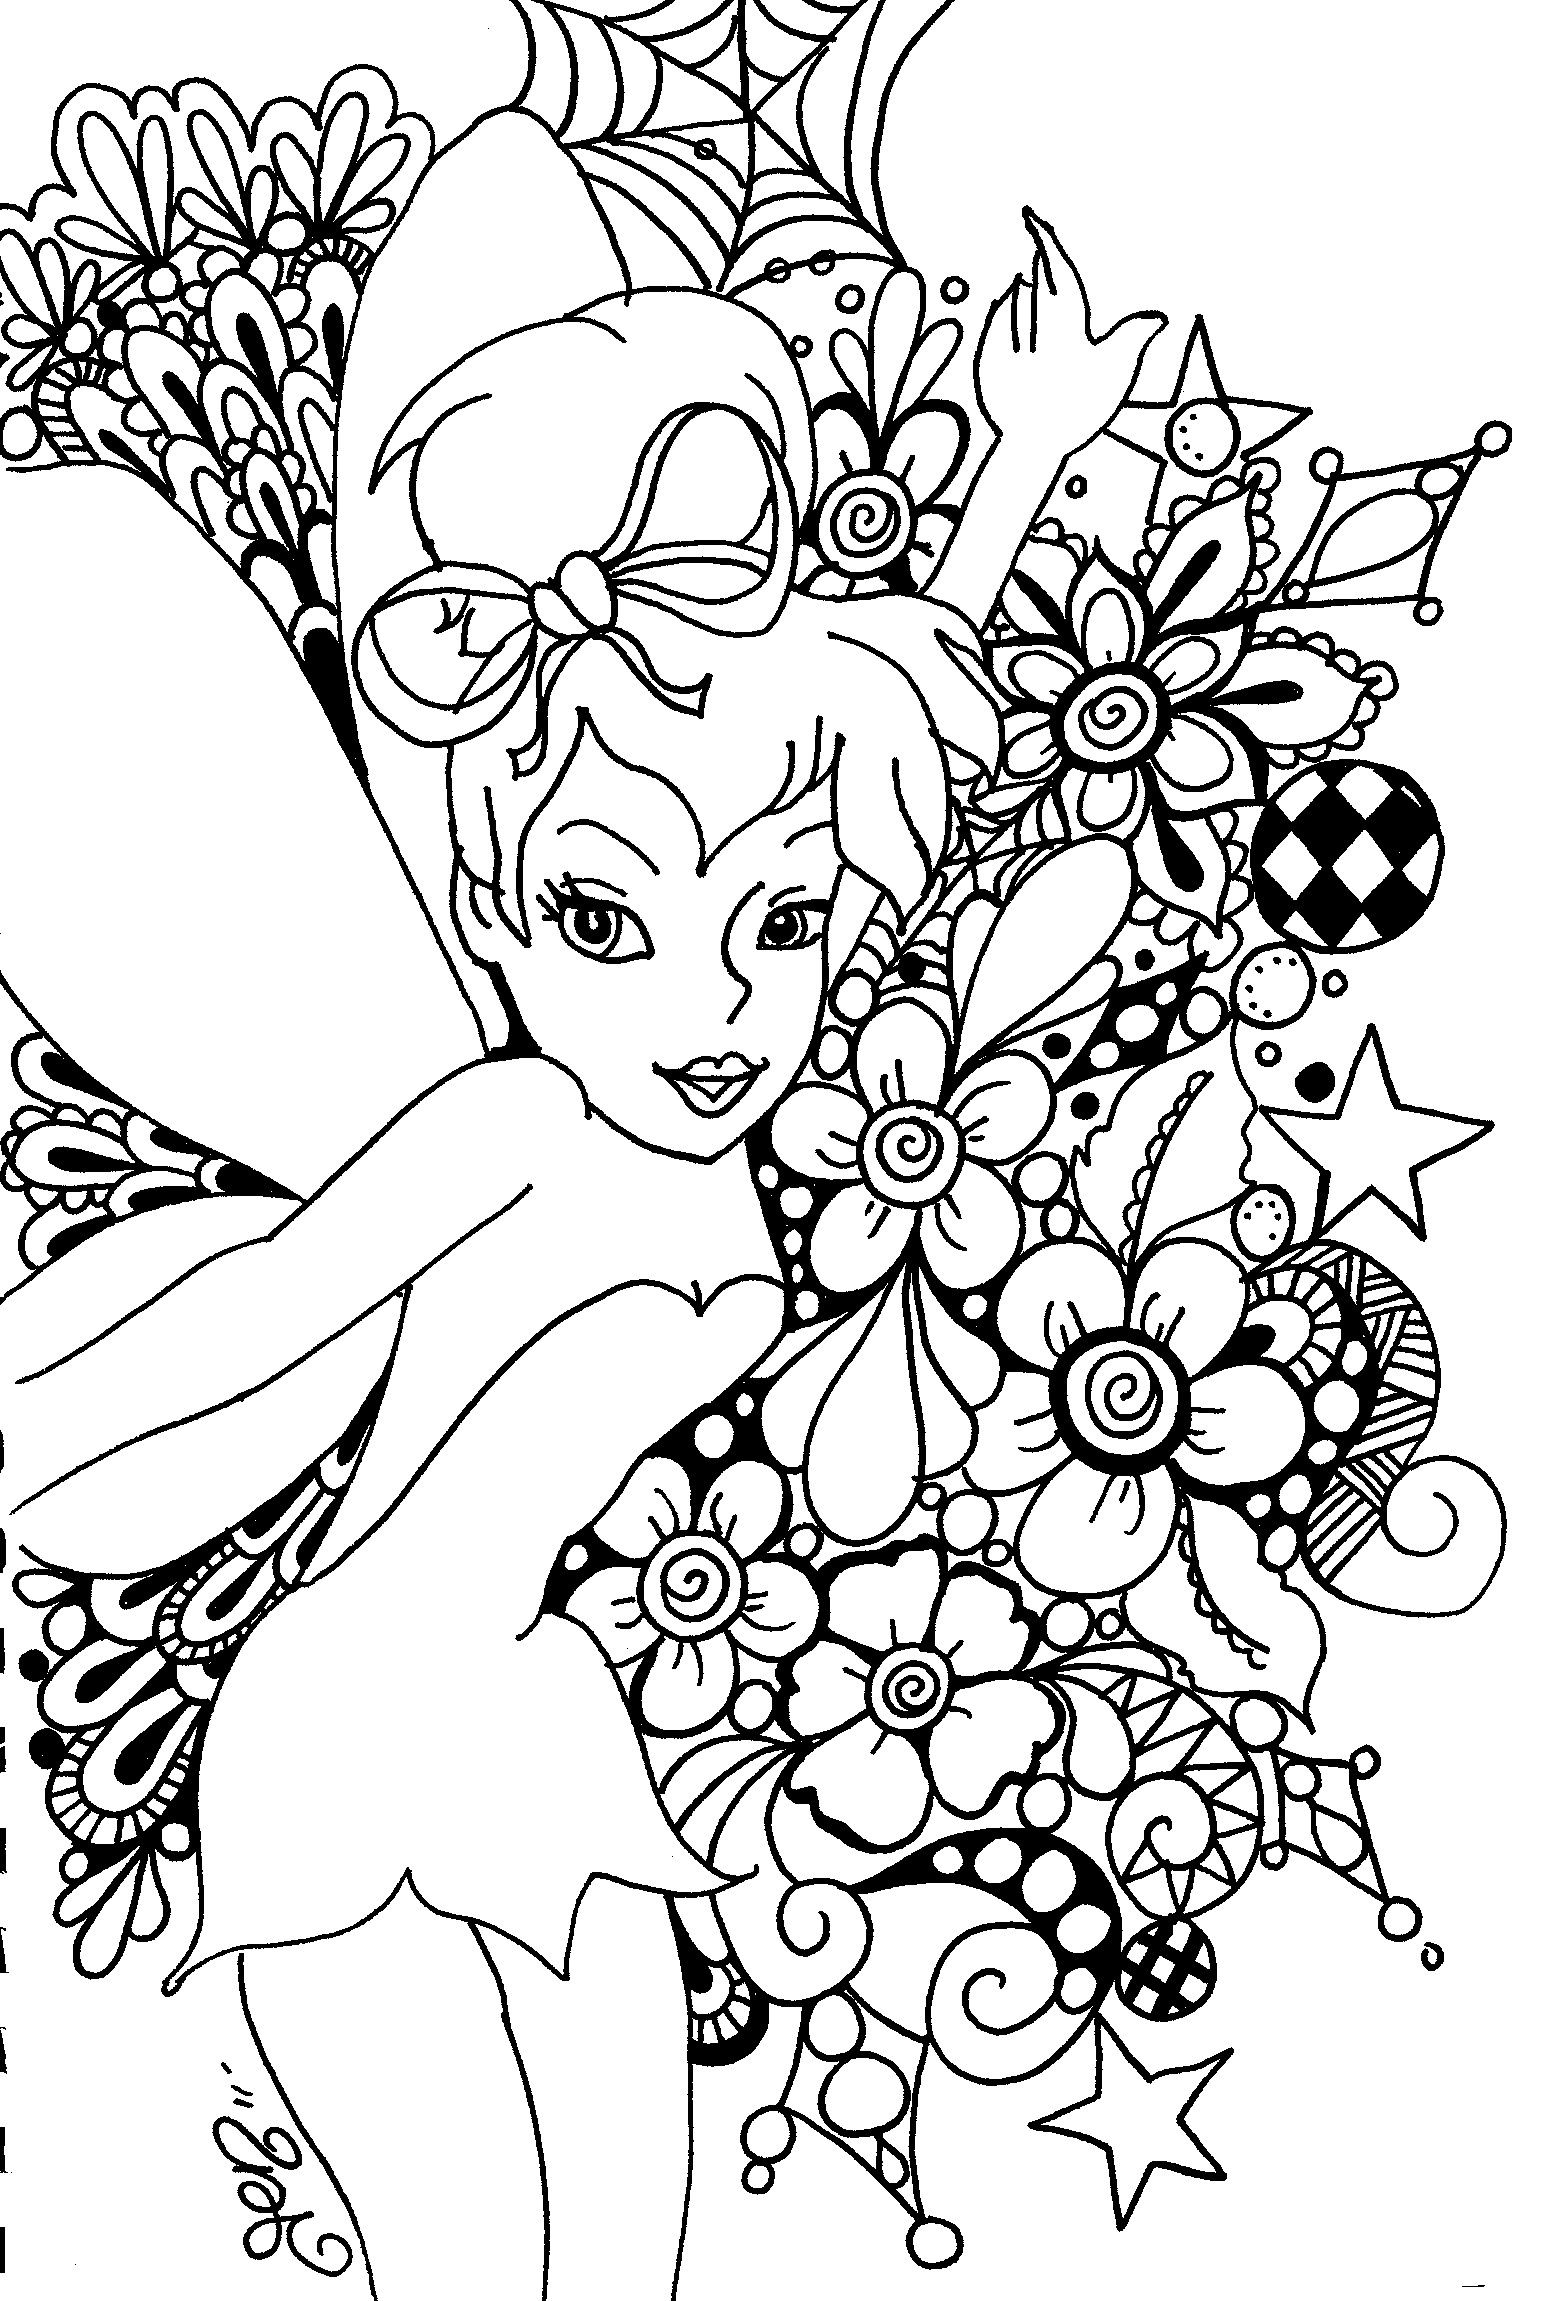 Free Printable Tinkerbell Coloring Pages For Kids | Pinterest ...